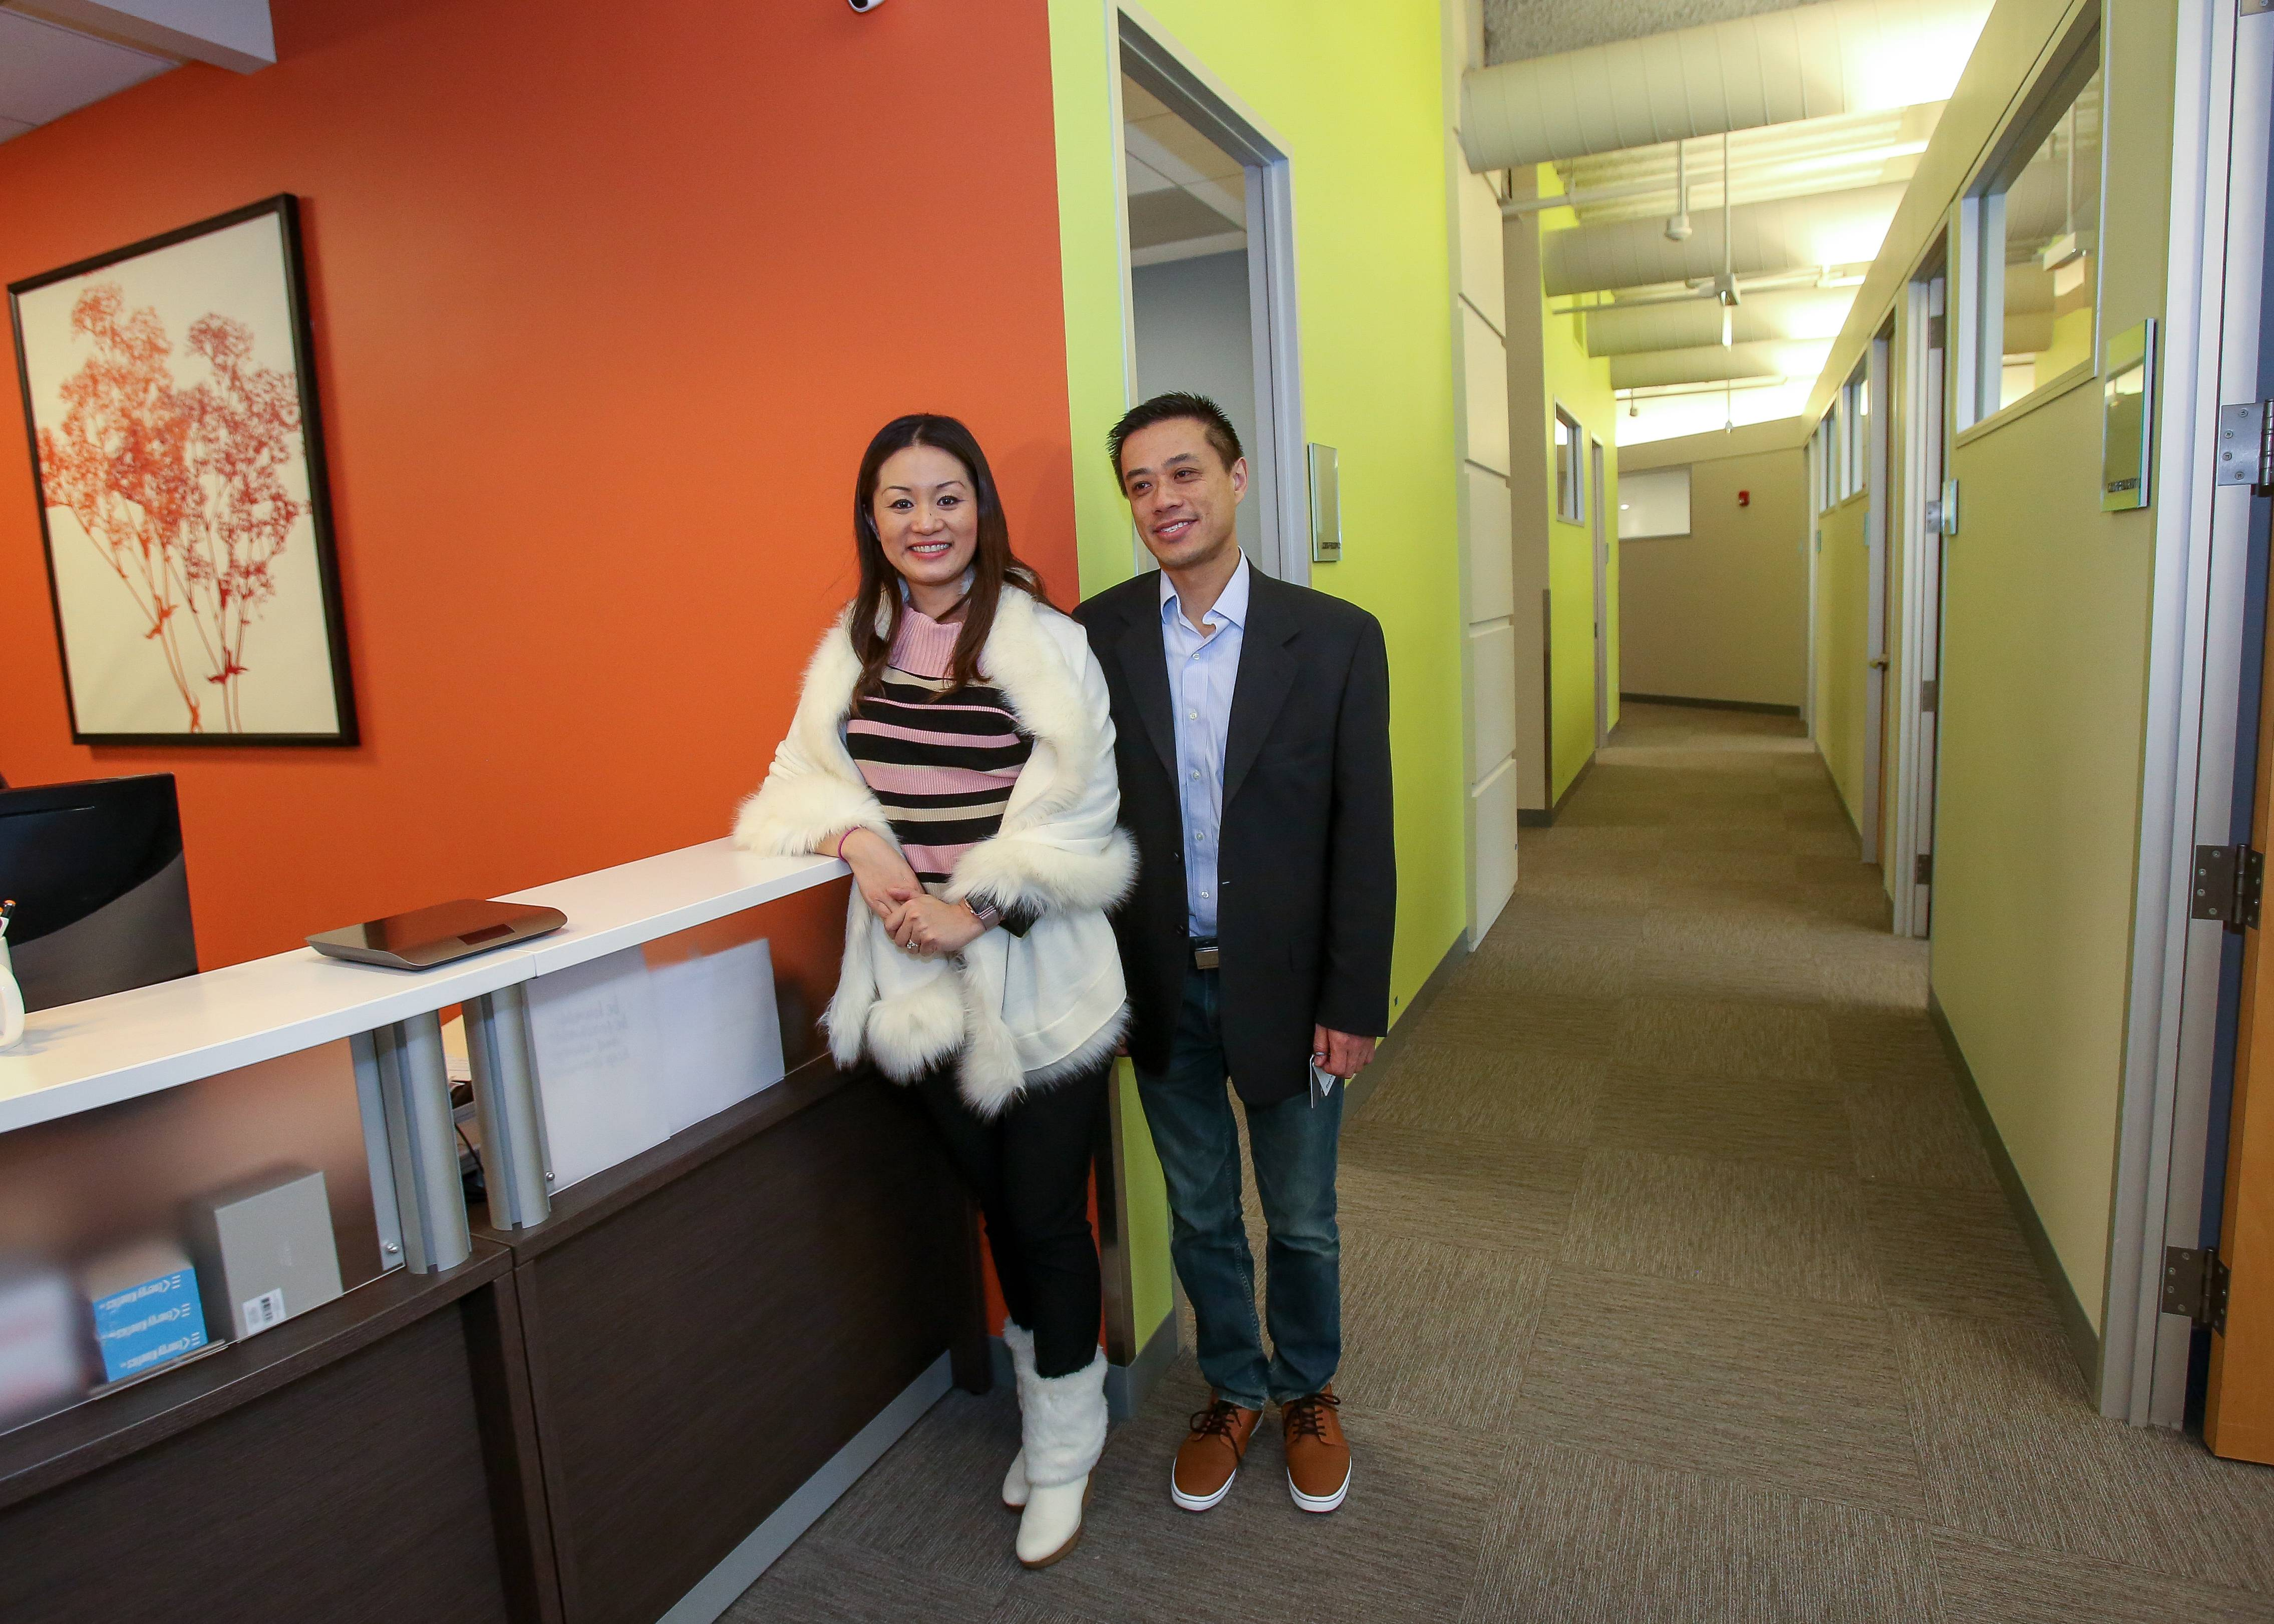 Franchisees Joshua and Ashley Shi have established Office Evolution coworking centers in Lisle and Naperville. The Colorado-based company aims to expand to offer as many as 30 locations across the region.